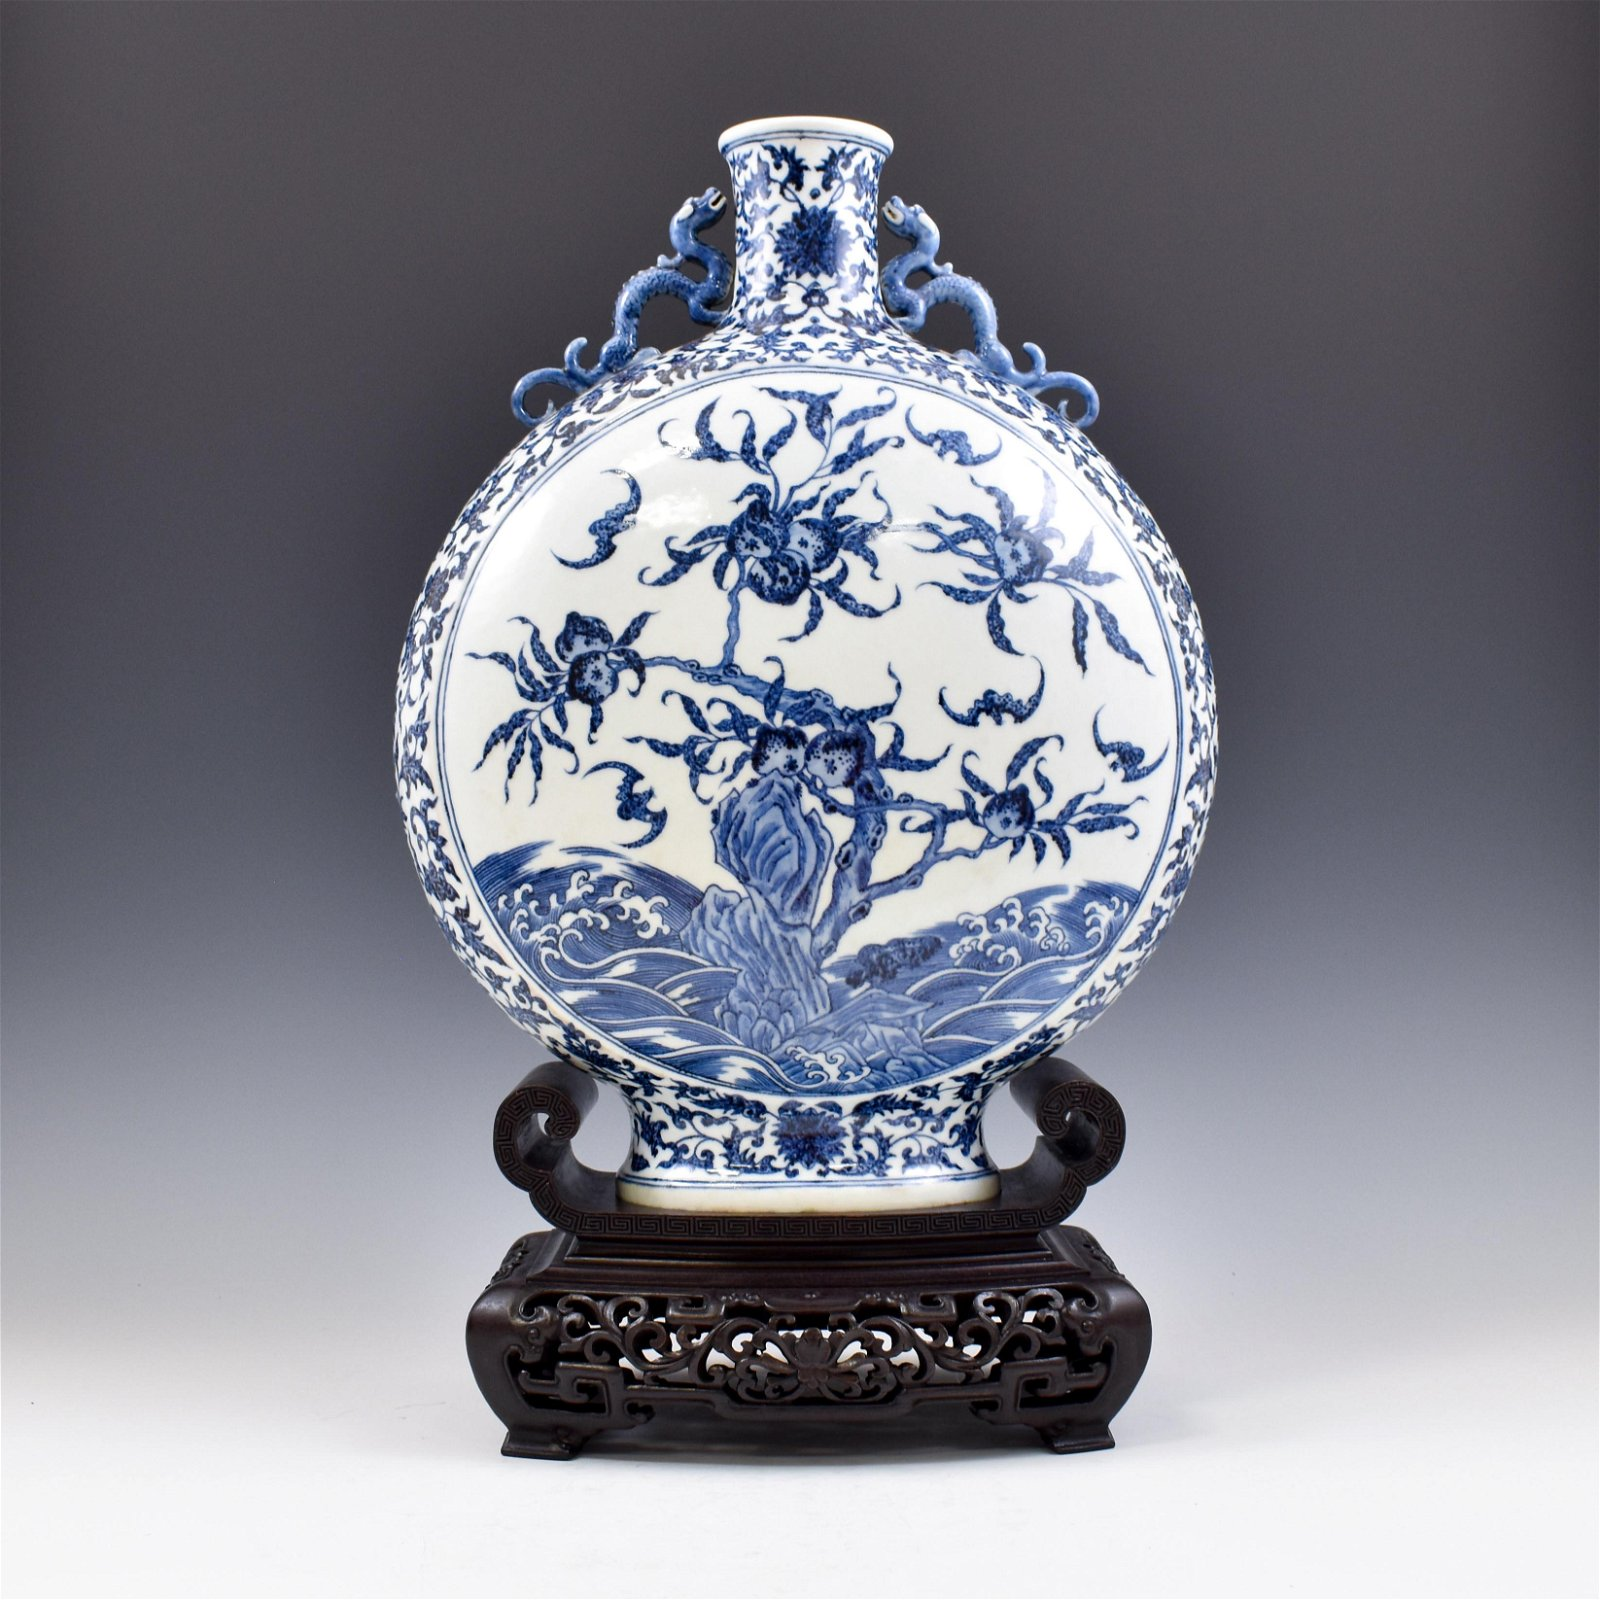 JIAQING BLUE AND WHITE MOON VASE ON STAND